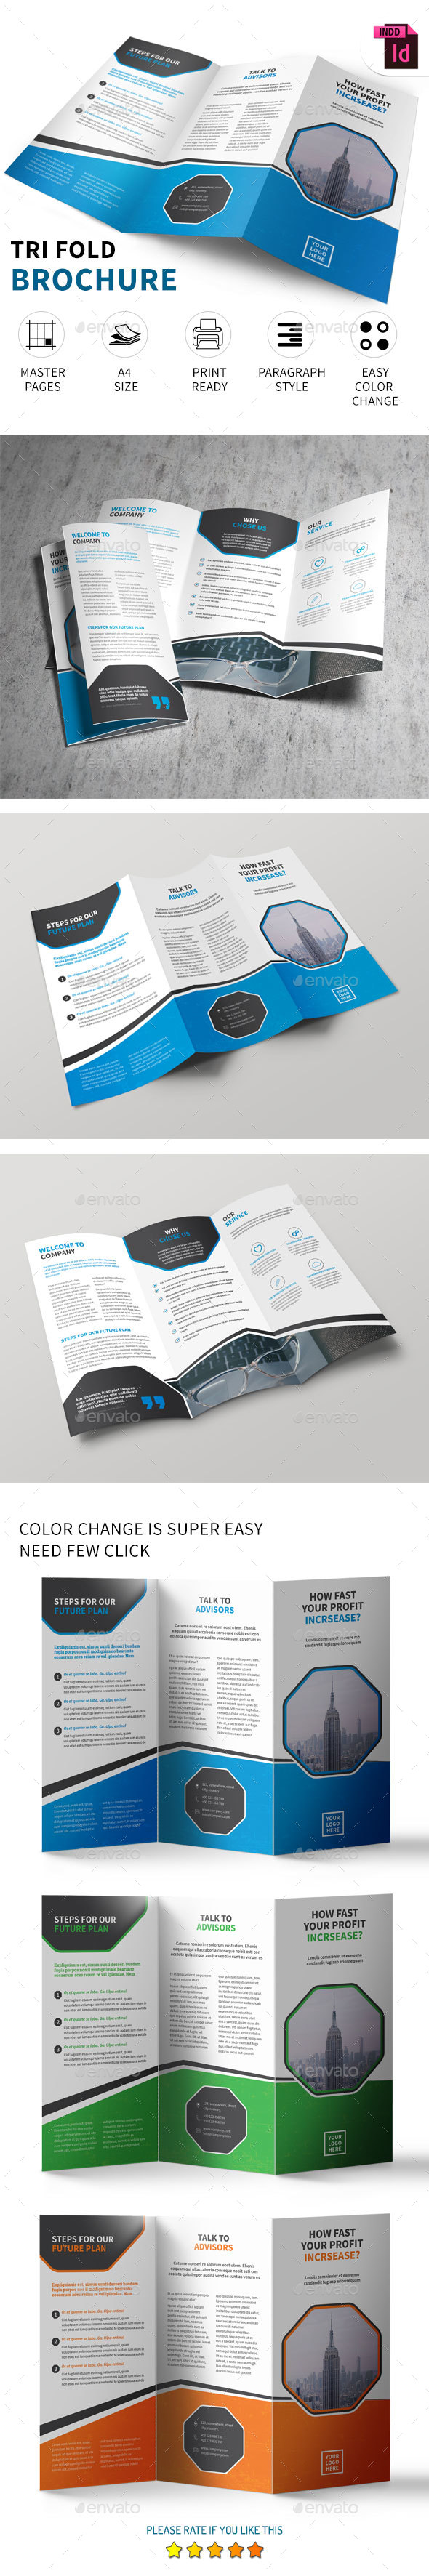 Tri-fold Brochure vol - 5.0 - Corporate Brochures